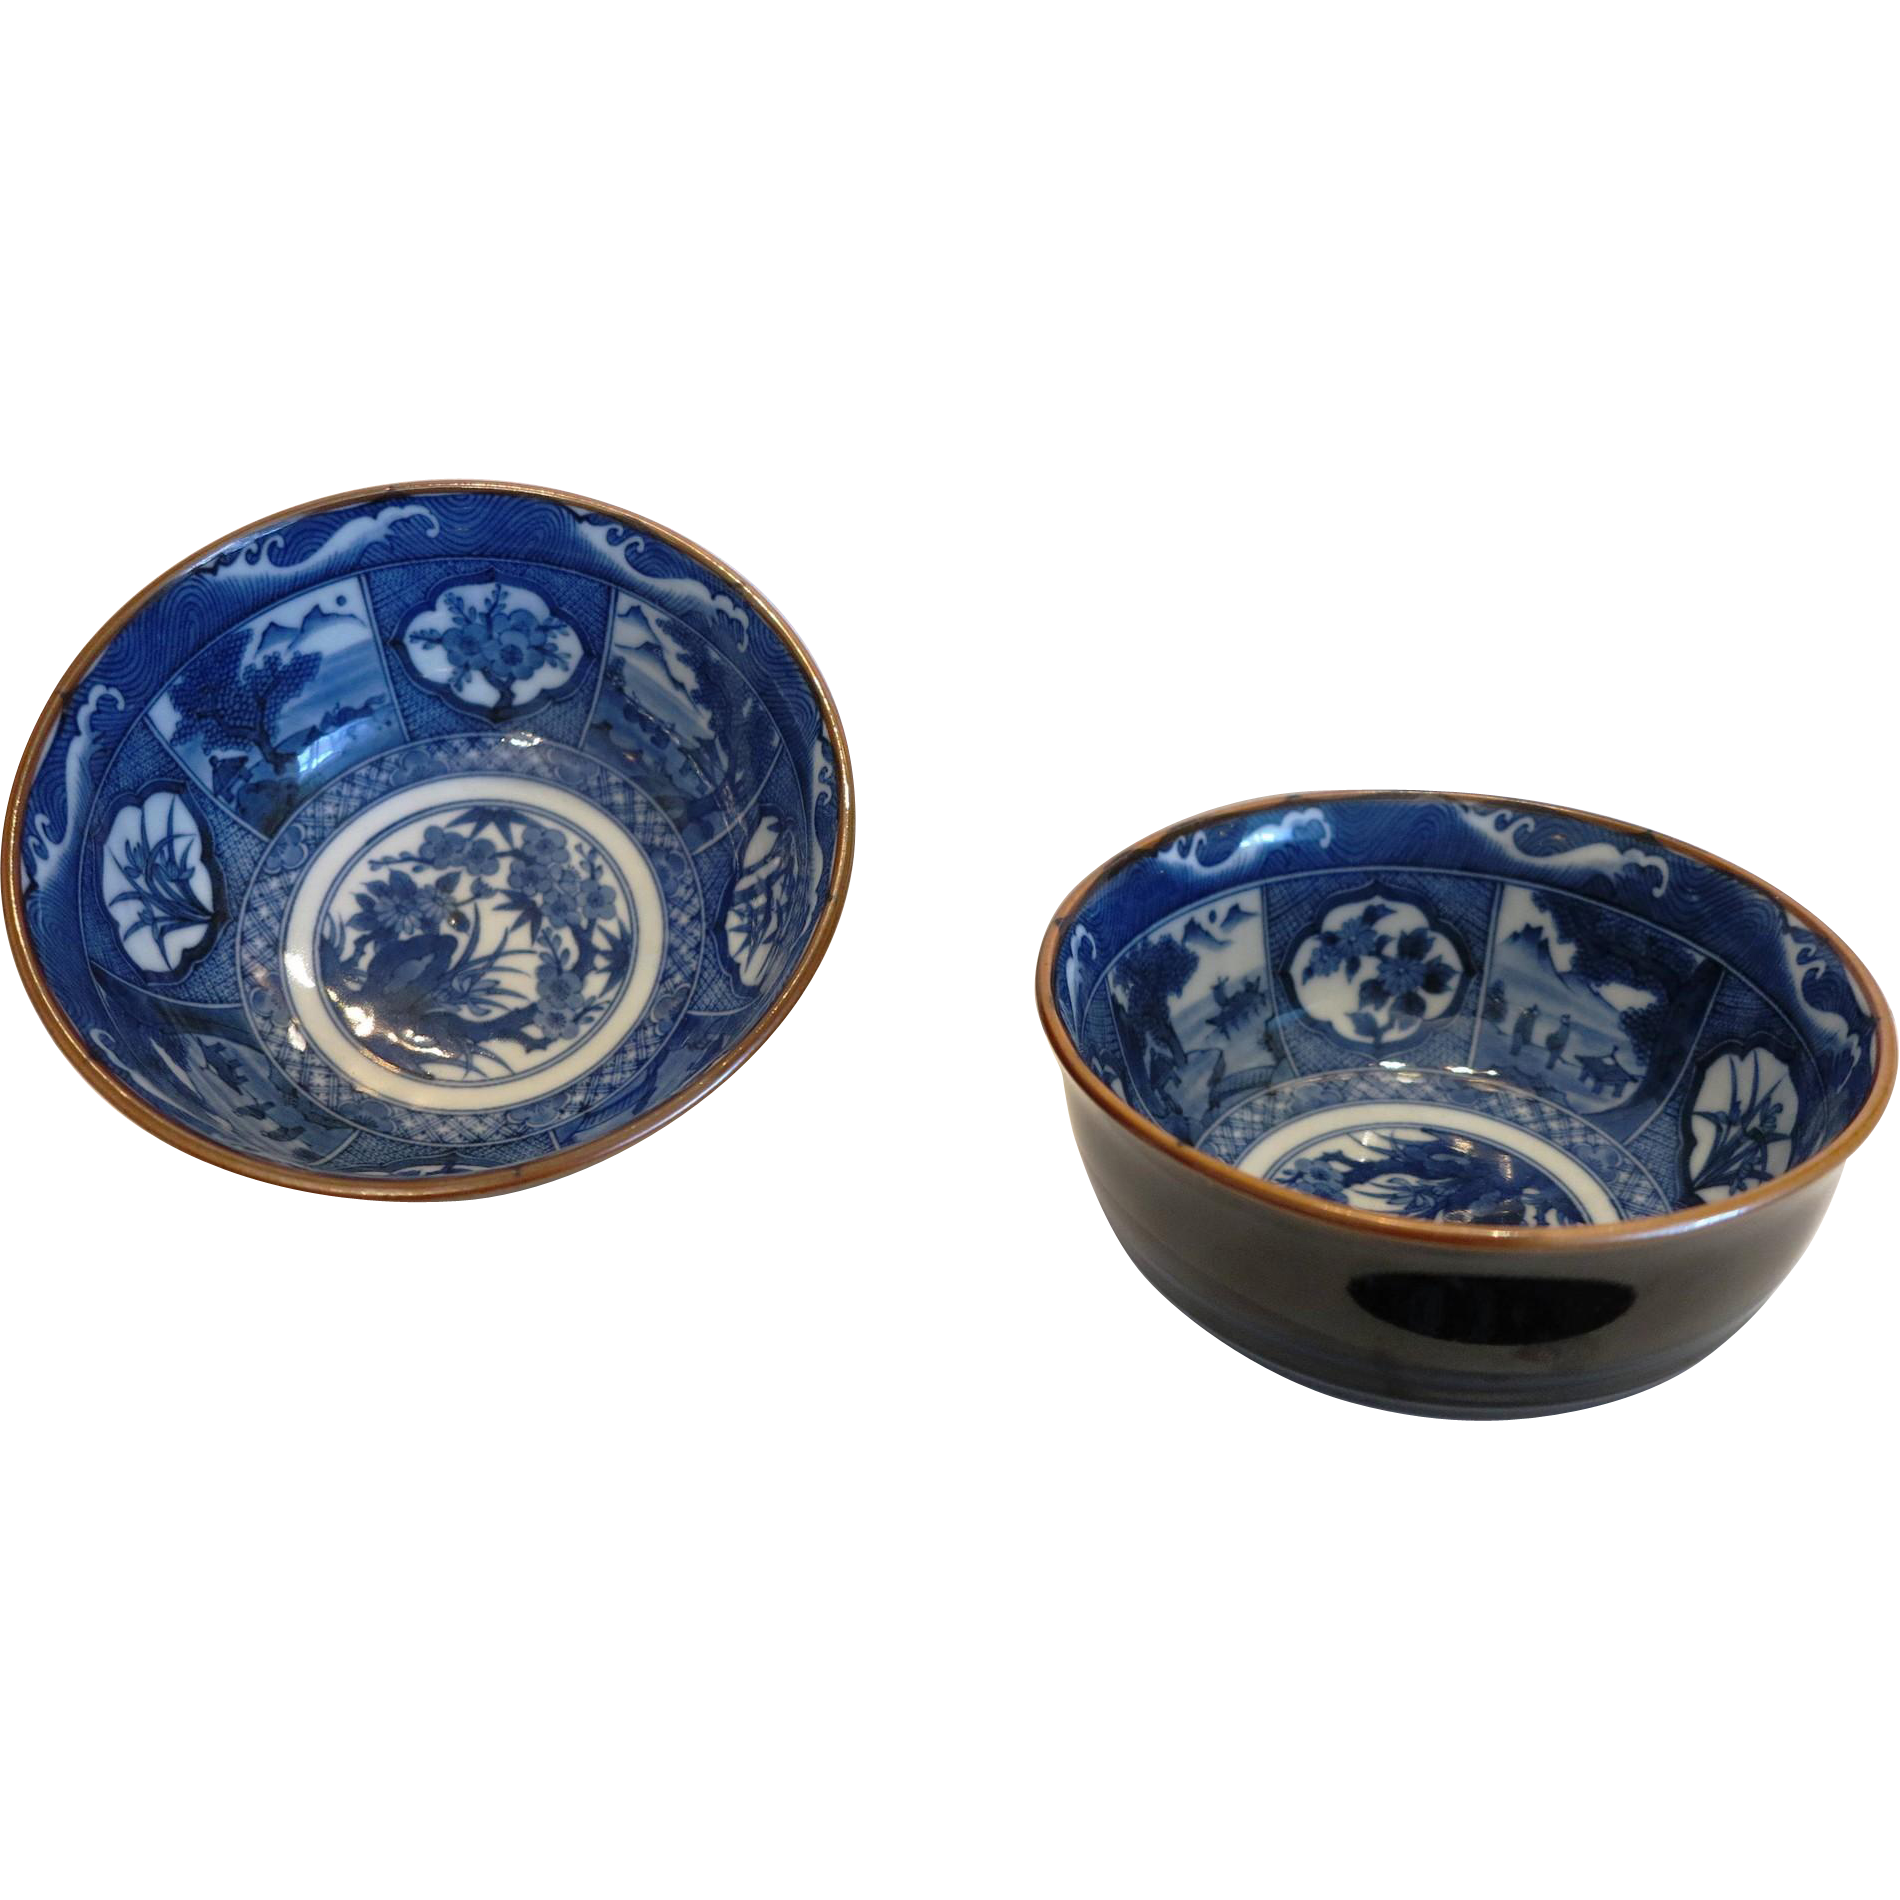 A pair of Chinese Export bowls in blue white design